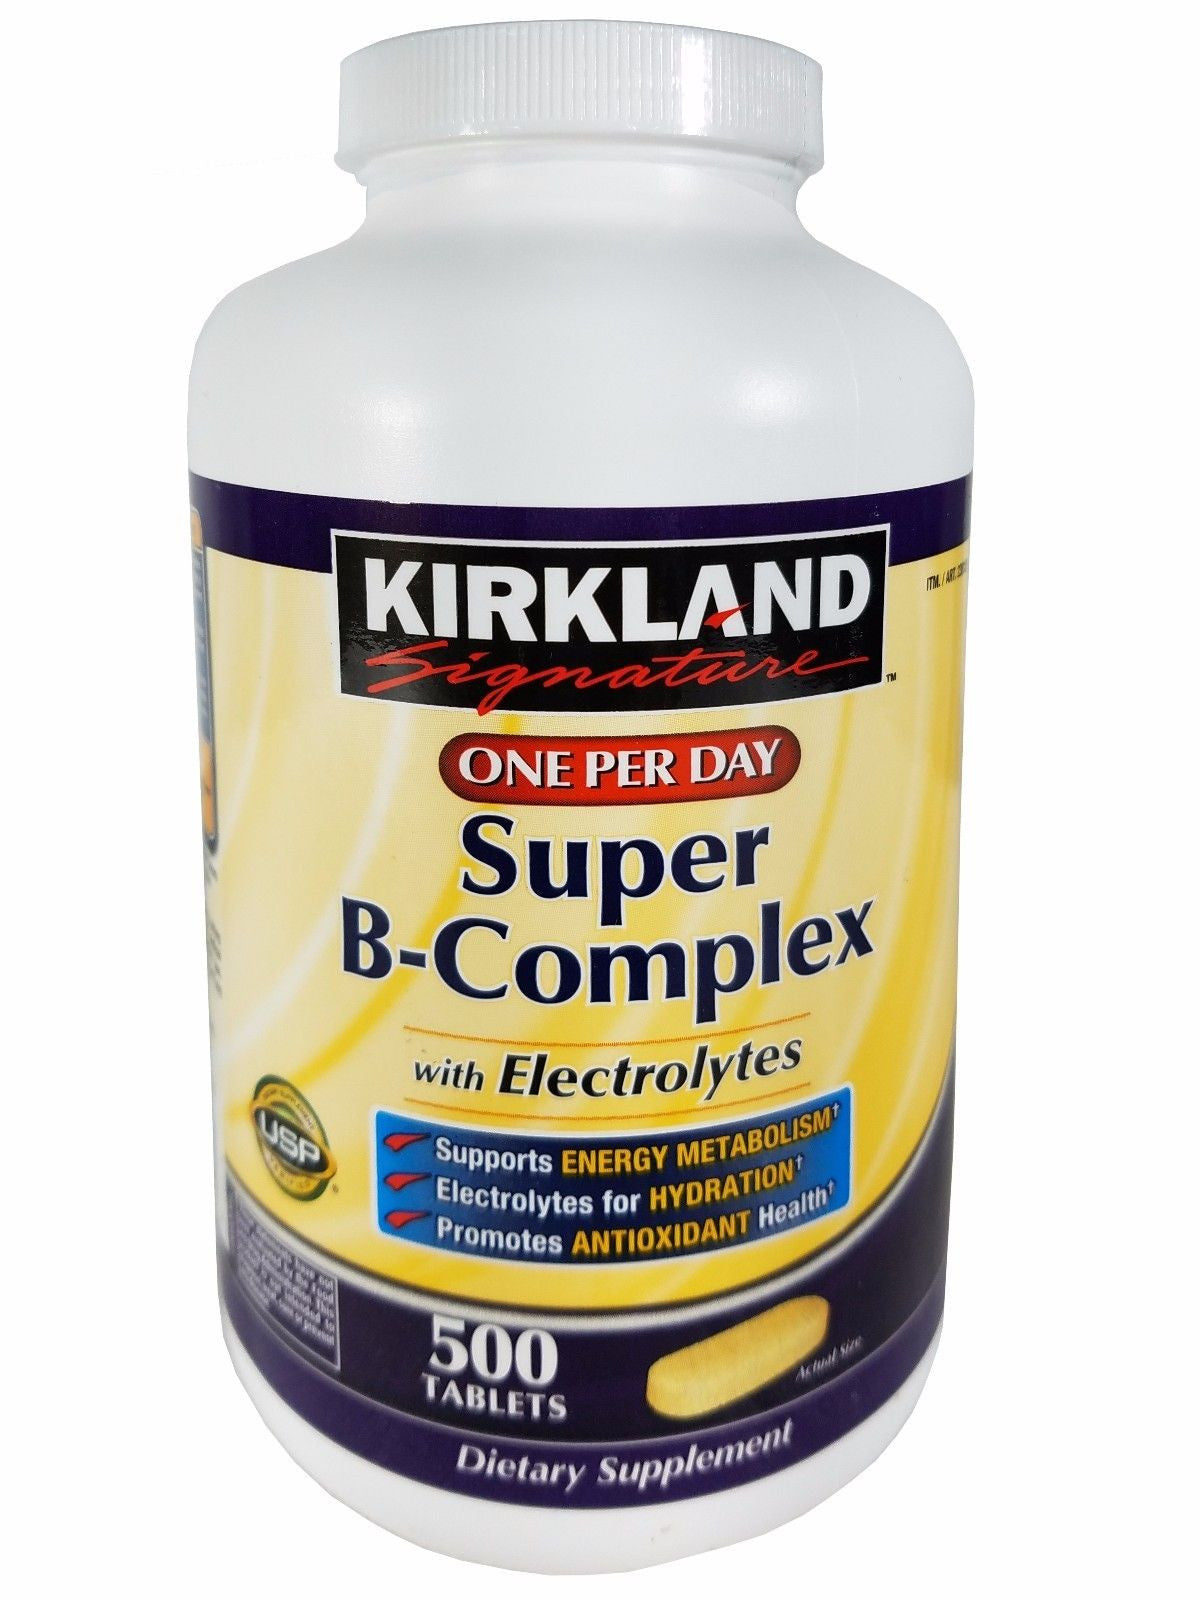 Kirkland Super B-Complex with Electrolytes One per Day Supplement 500 Tablets